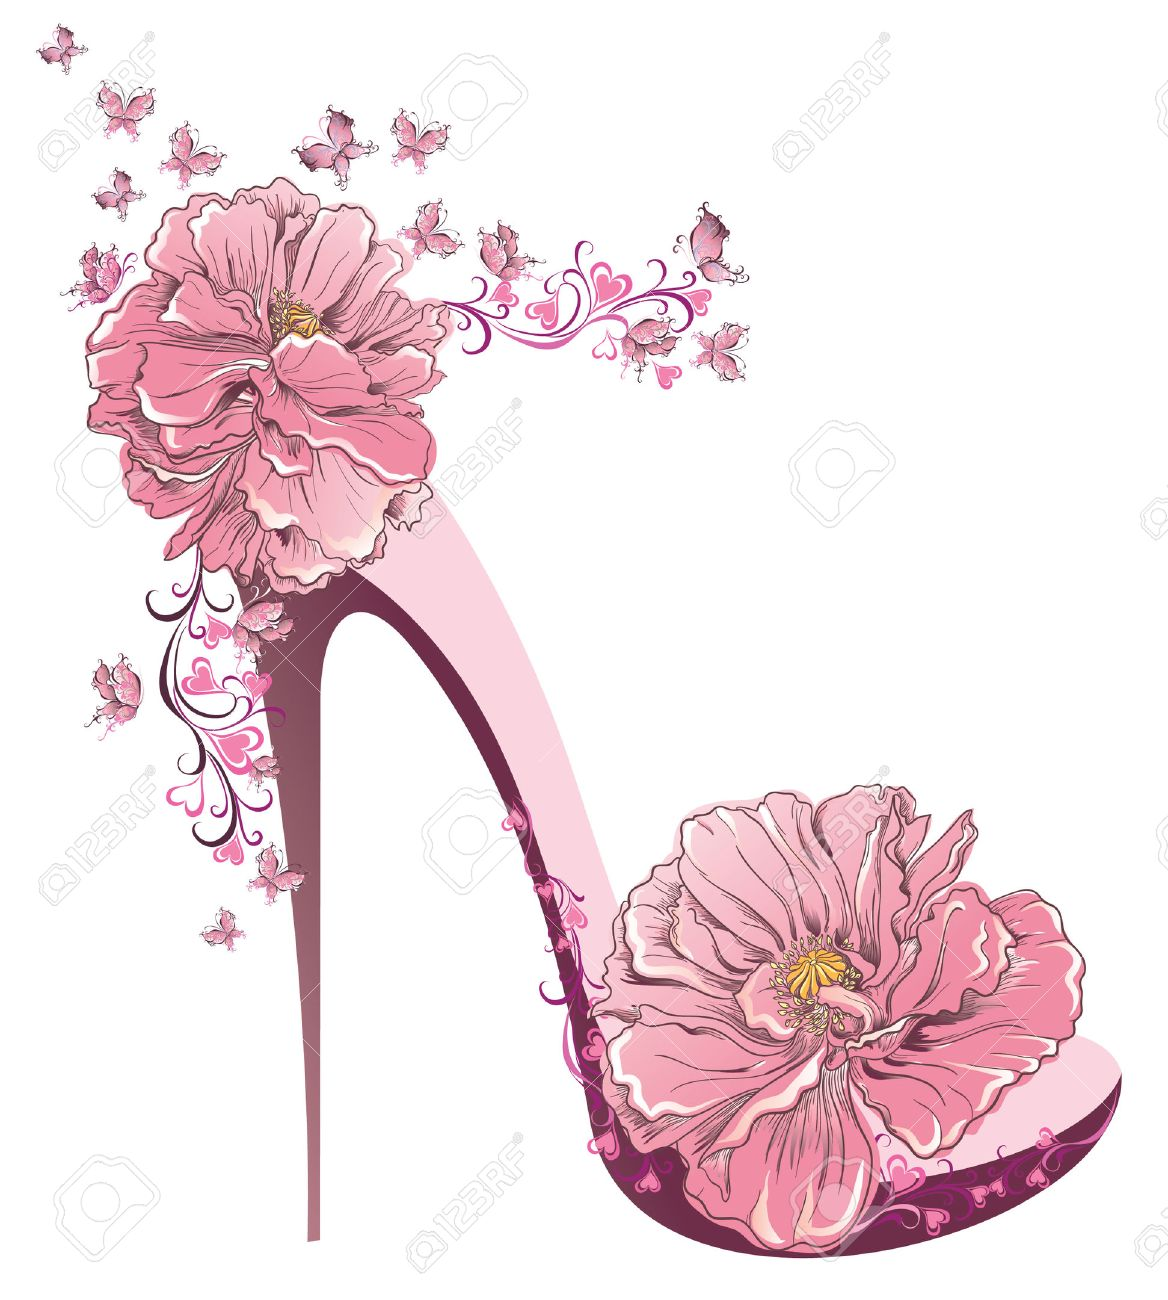 High Heels Vintage Shoes With Flowers Royalty Free Cliparts Vectors